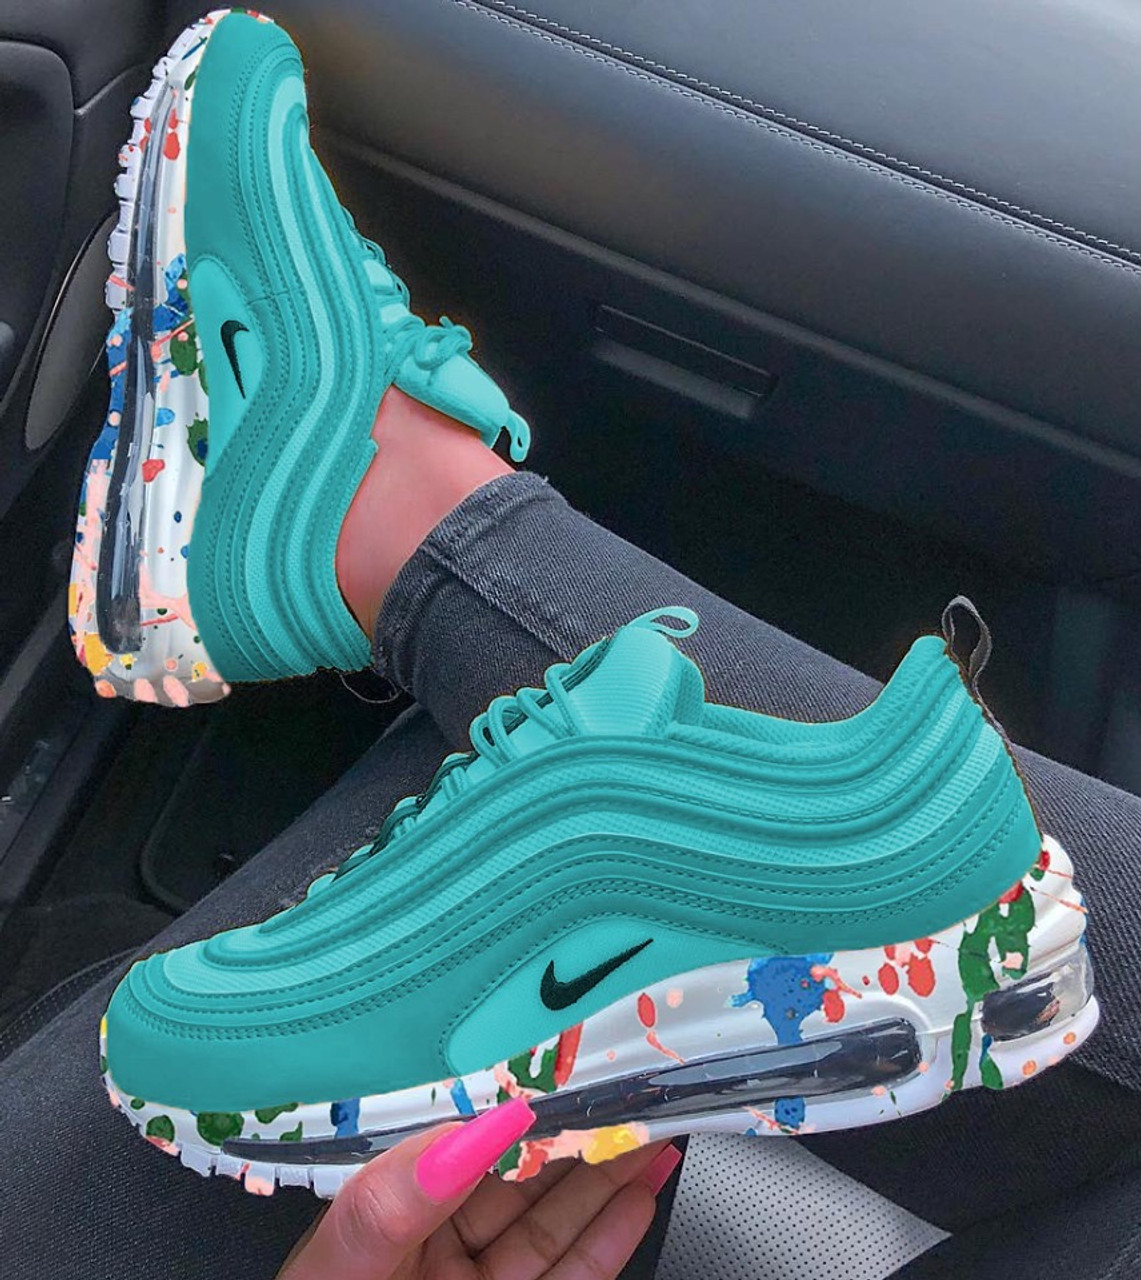 cheaper 23934 9330e Ocean Graffiti Air Max 97s ( GS AND MEN SIZE )